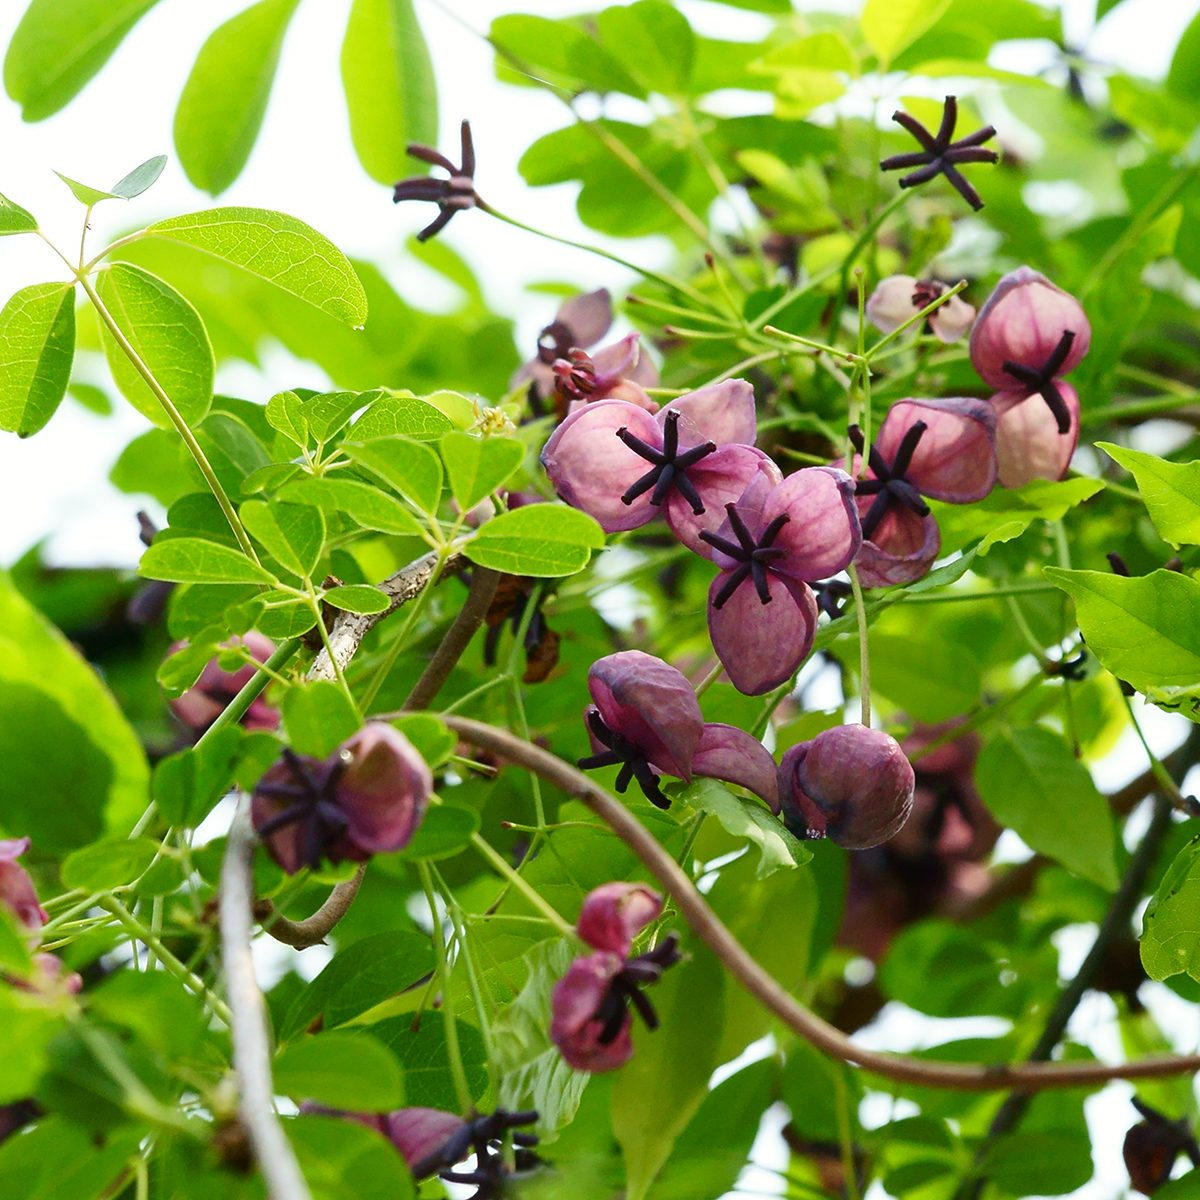 Purple flowers bloom in the spring, and the fruit is similar to kiwi. Gyeonggido province in South Korea, 2014.